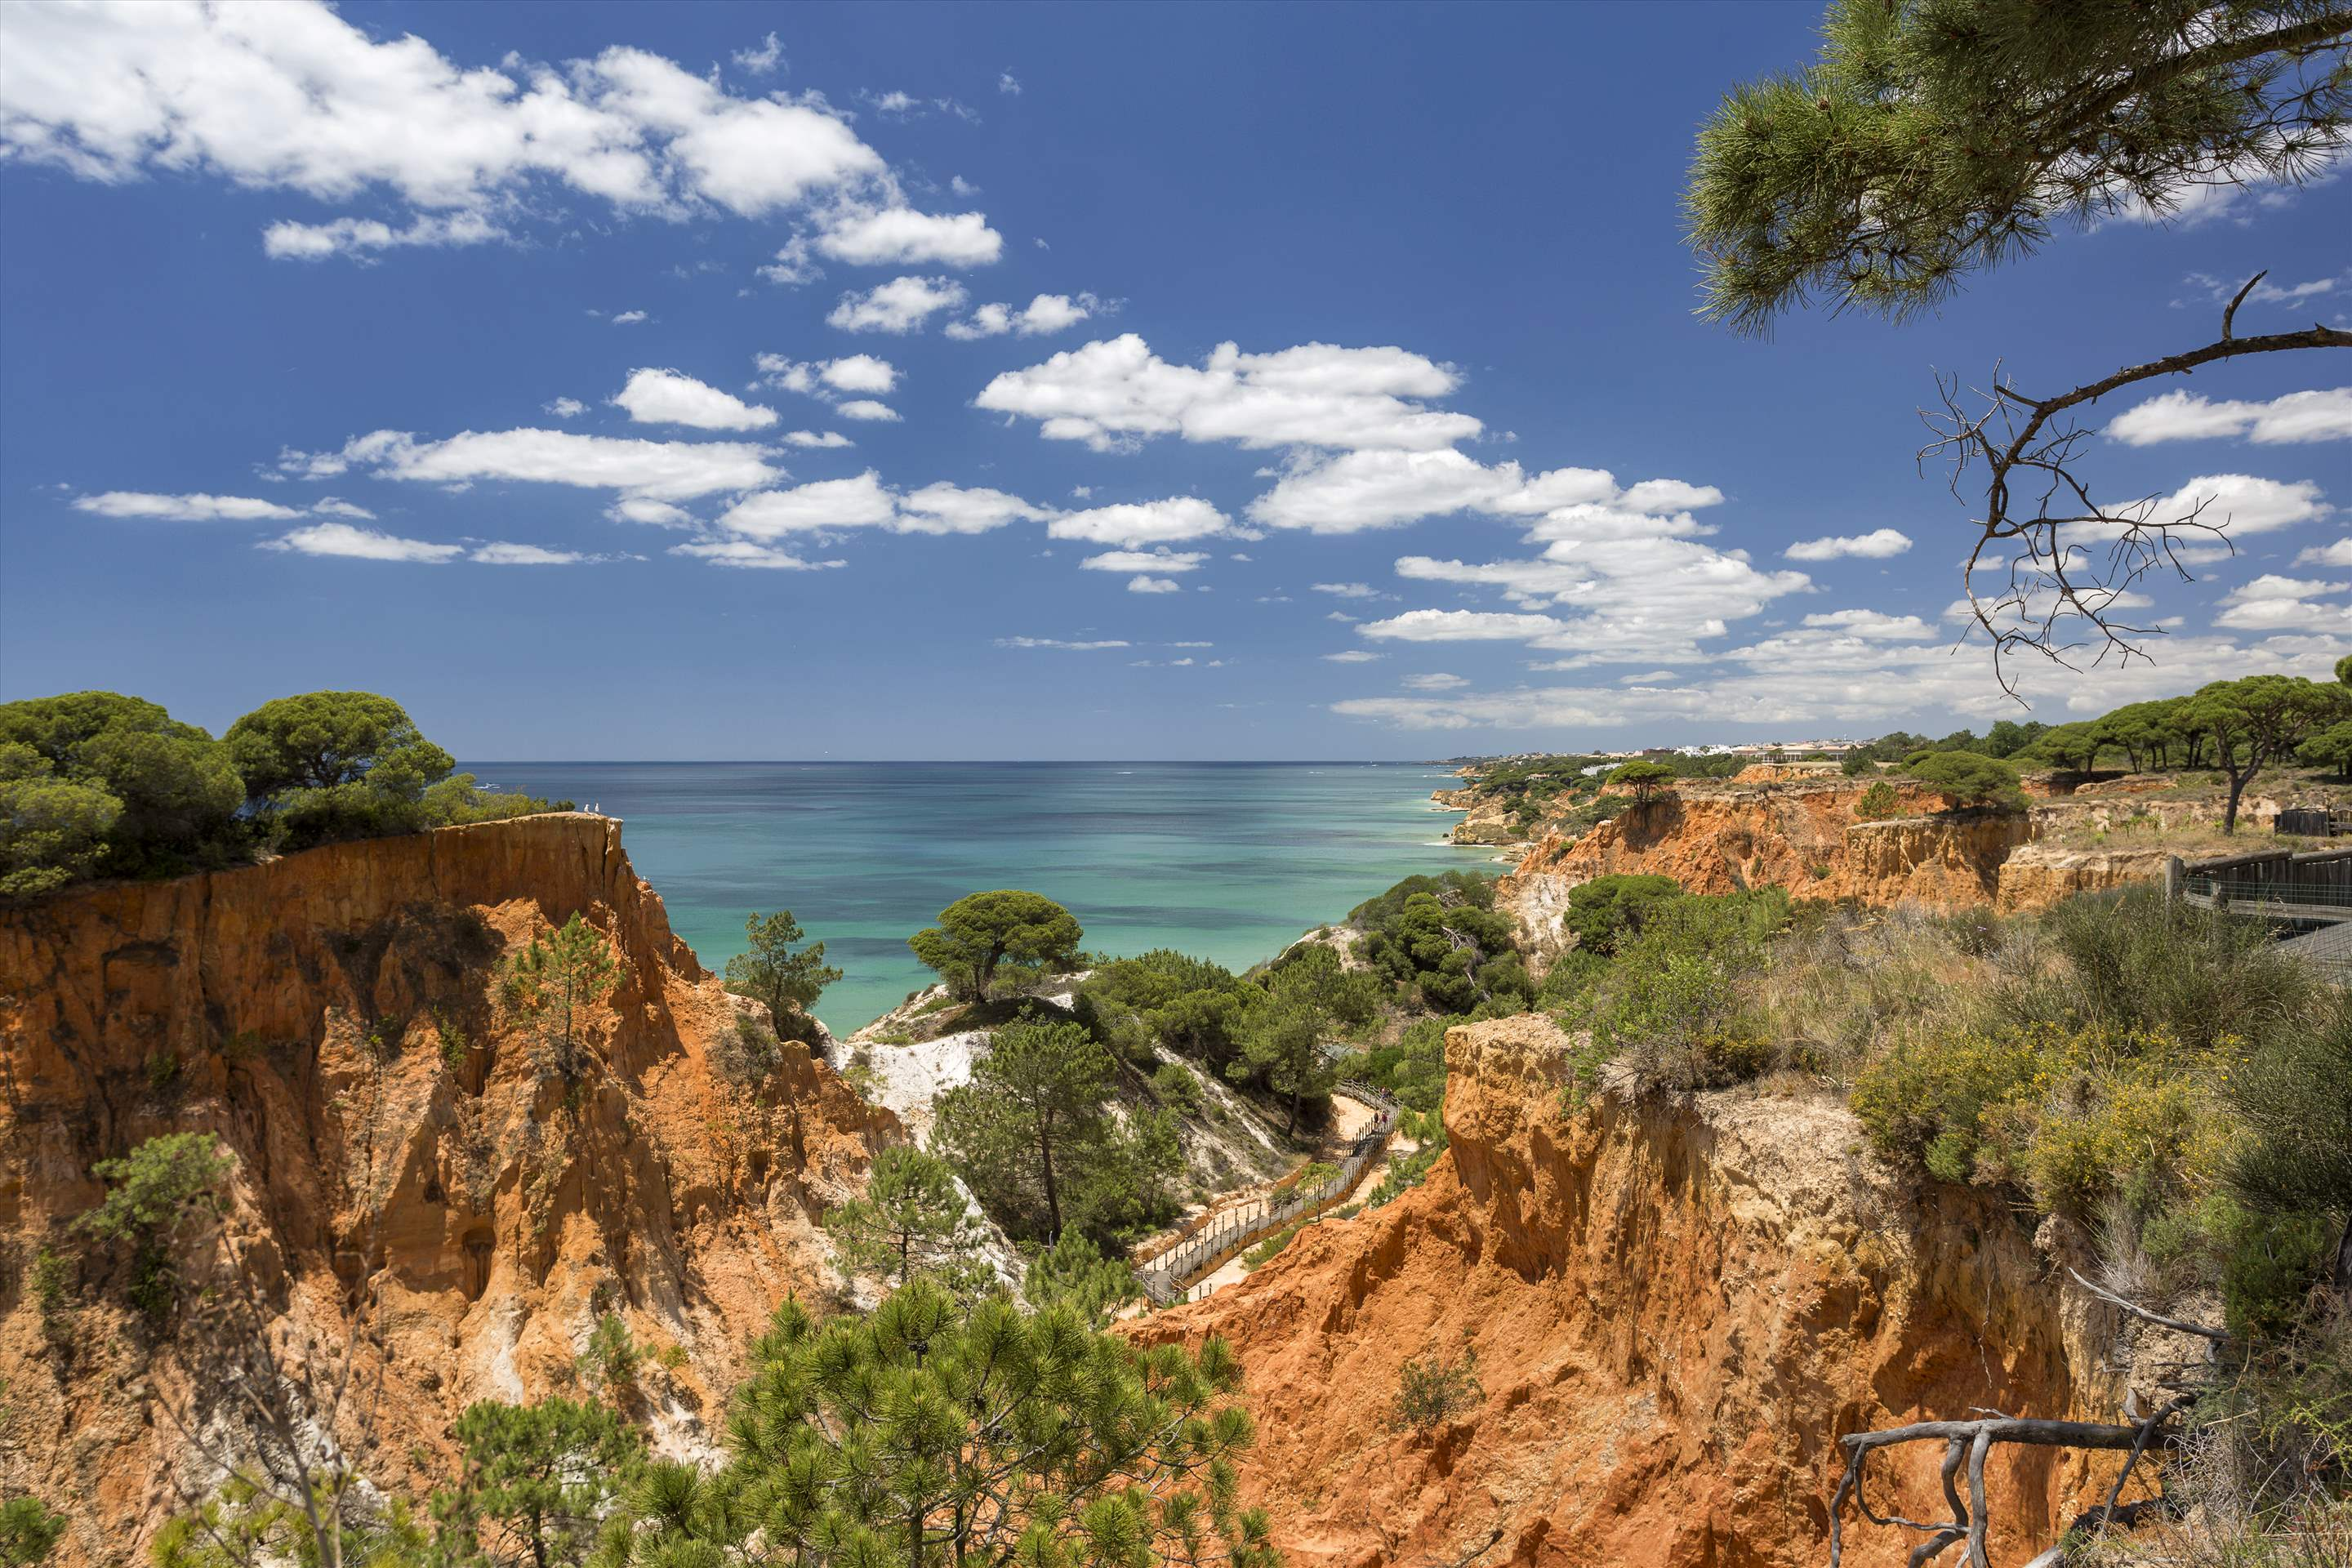 Pine Cliffs Gardens, One Bedroom Suite, S/C Basis, 1 bedroom apartment in Pine Cliffs Resort, Algarve Photo #24